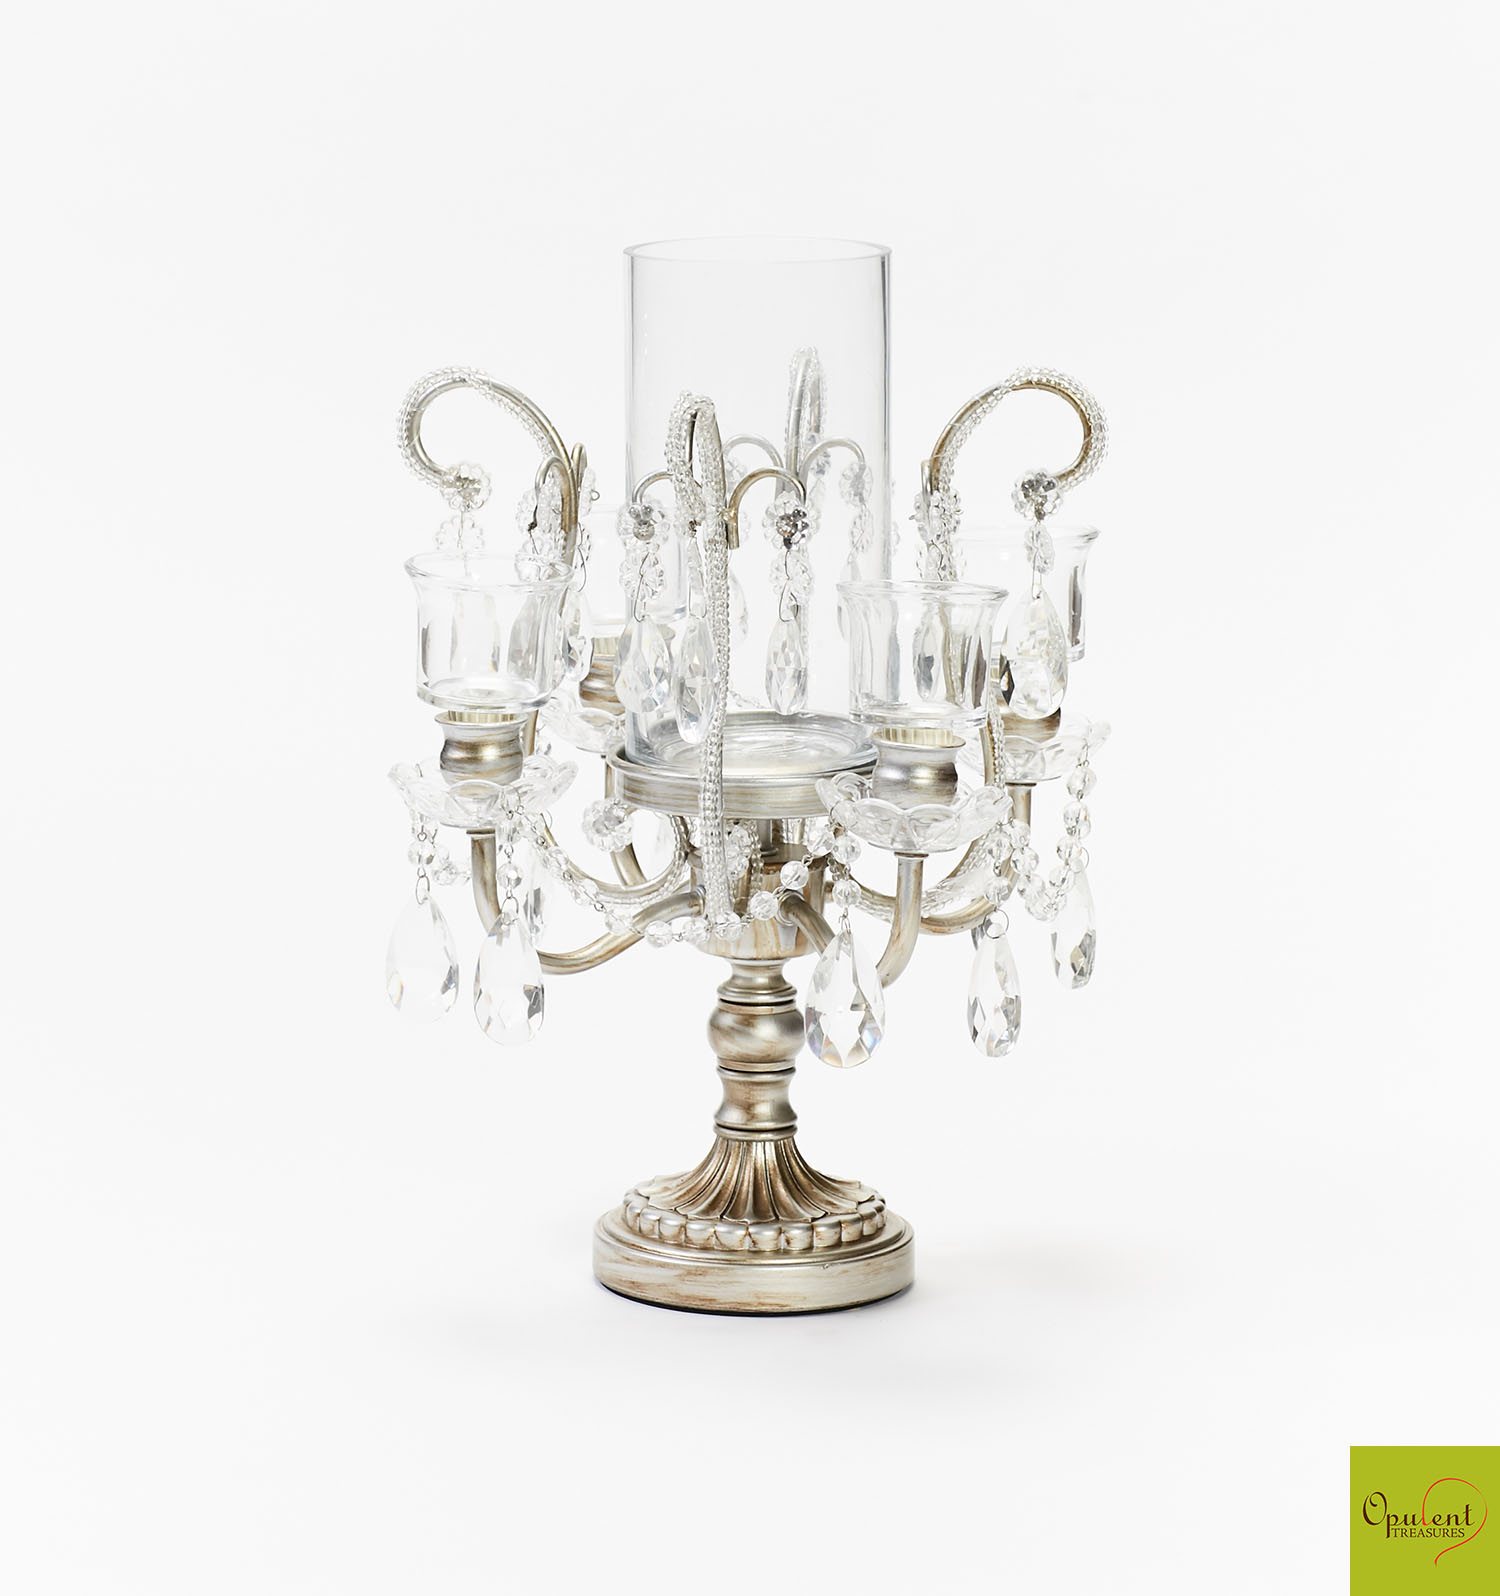 lighting treasures. Opulent Treasures Bouquet Vase Candleholder Lighting